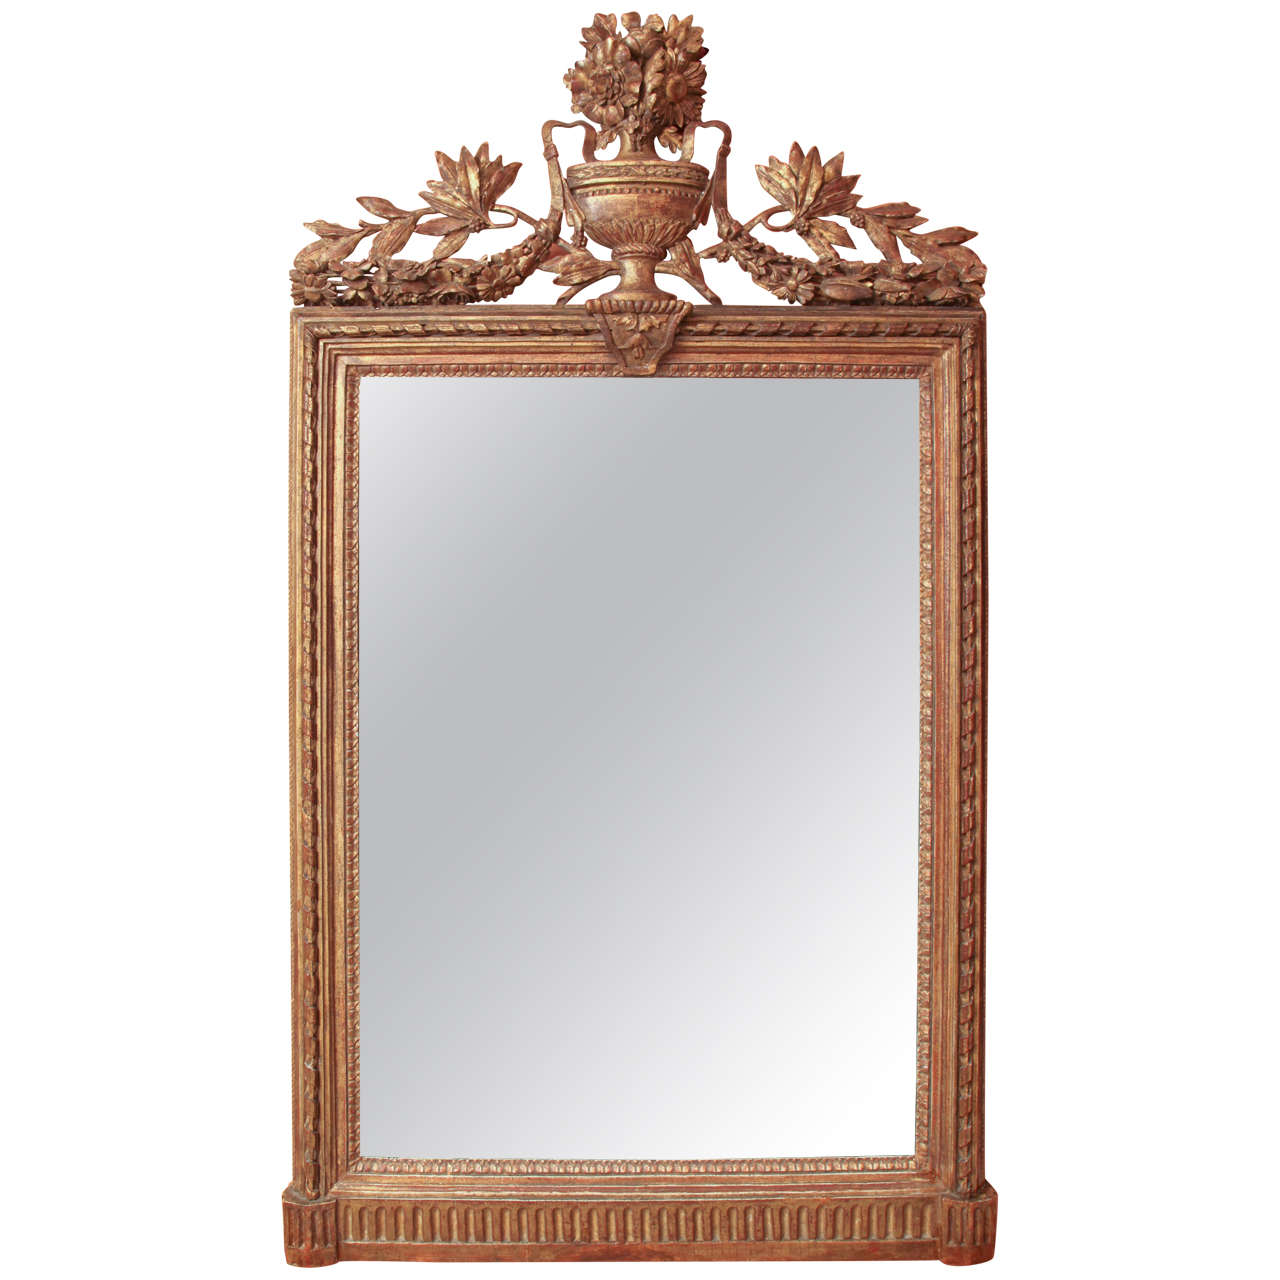 Louis XVI Console Mirror with Urn and Foliate Swagged Crest